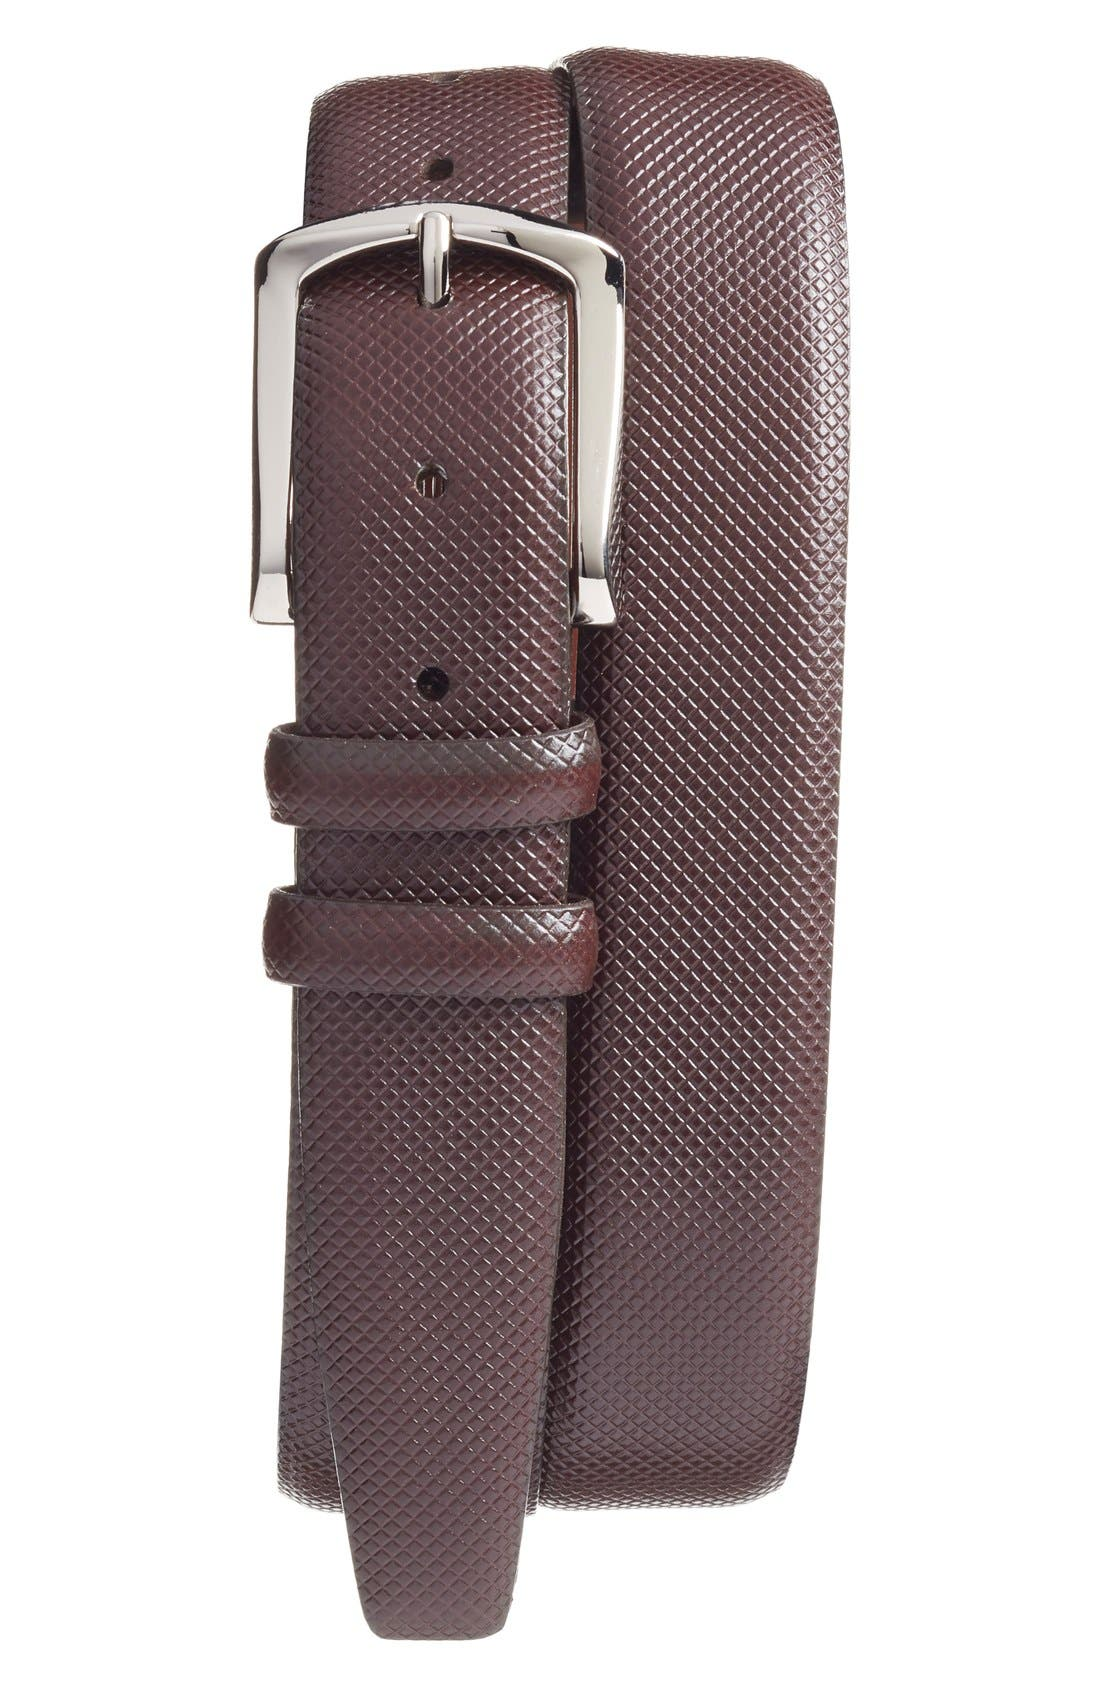 Fine diamond embossing textures a handsome belt crafted in rich bulgaro calfskin leather and secured with a polished nickel buckle. Style Name: Torino Bulgaro Calfskin Leather Belt. Style Number: 5165881. Available in stores.